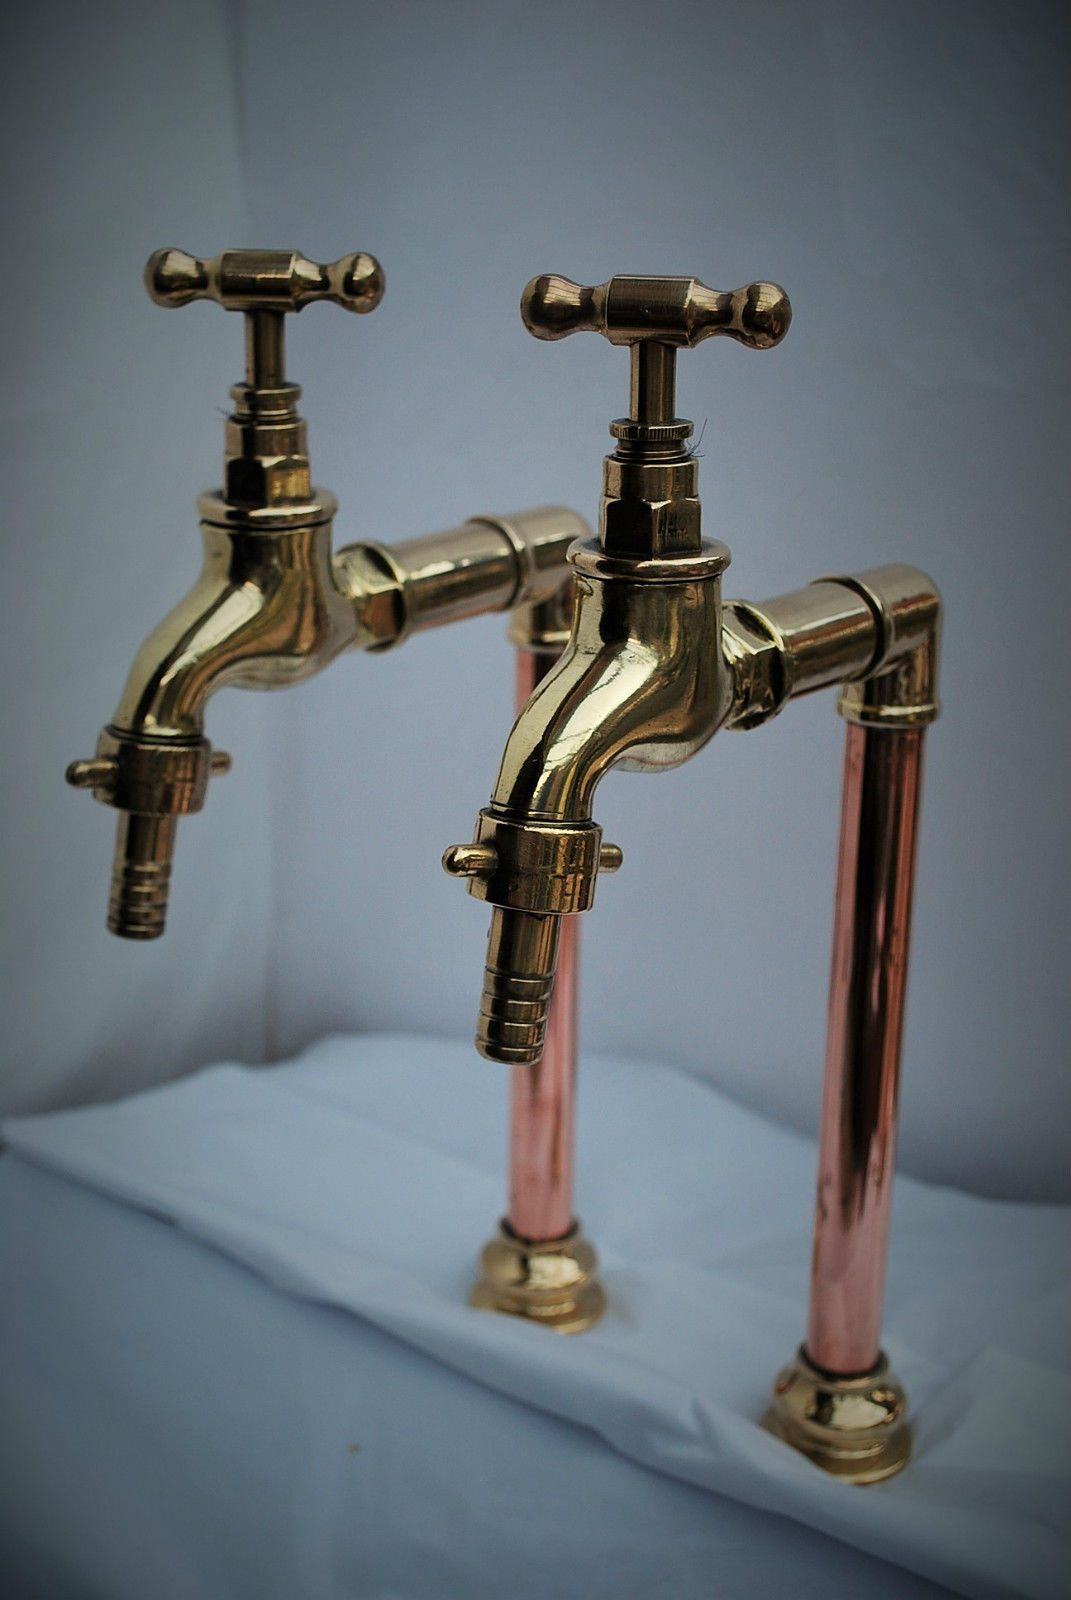 Brass copper belfast kitchen sink tall bib taps old for Recycled bathroom sinks